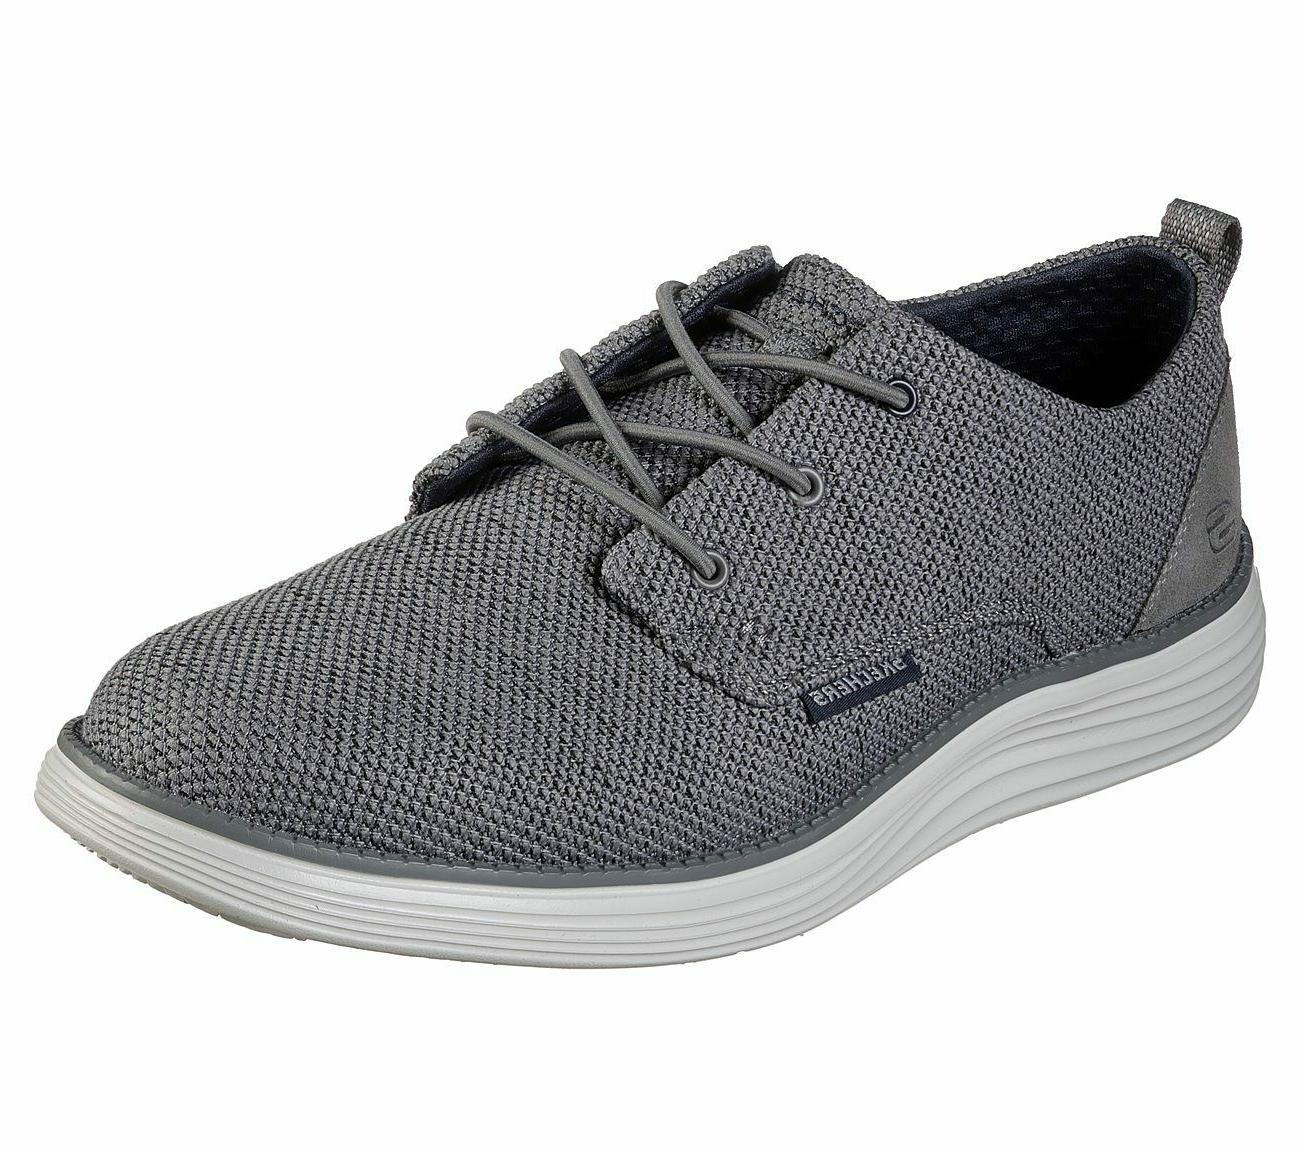 shoes gray men memory foam casual comfort